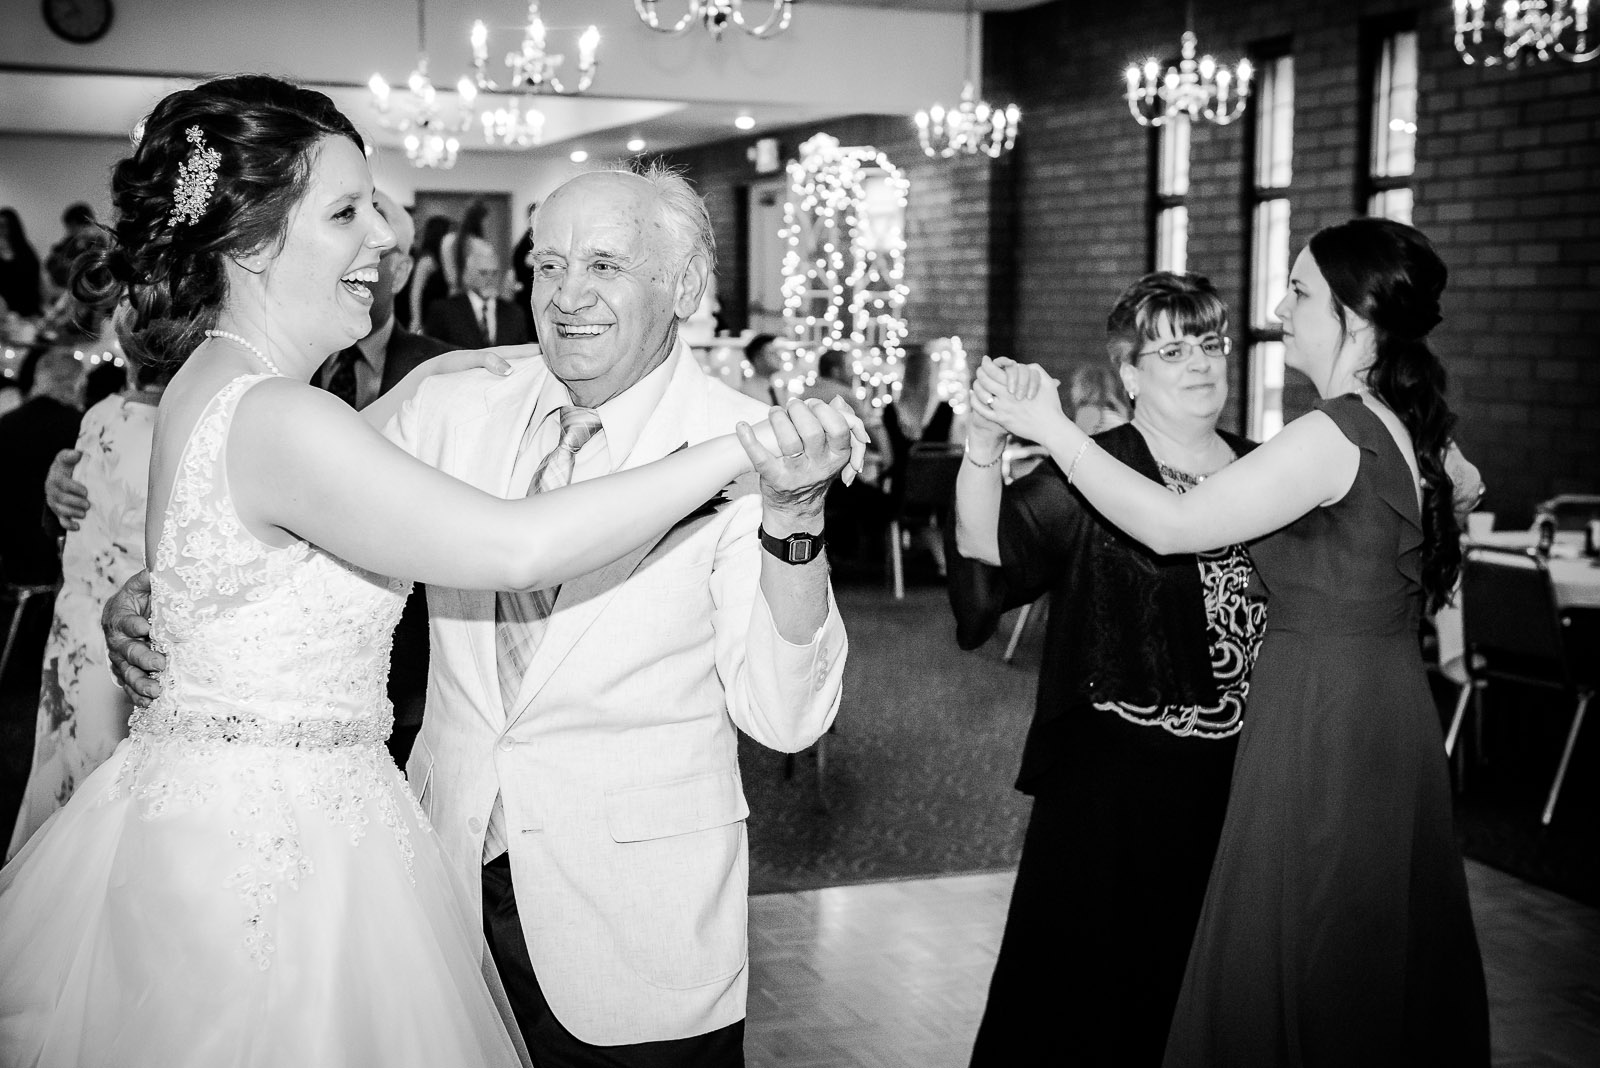 Eric_and_Christy_Photography_Blog_Wedding_Kelly_Michael-55